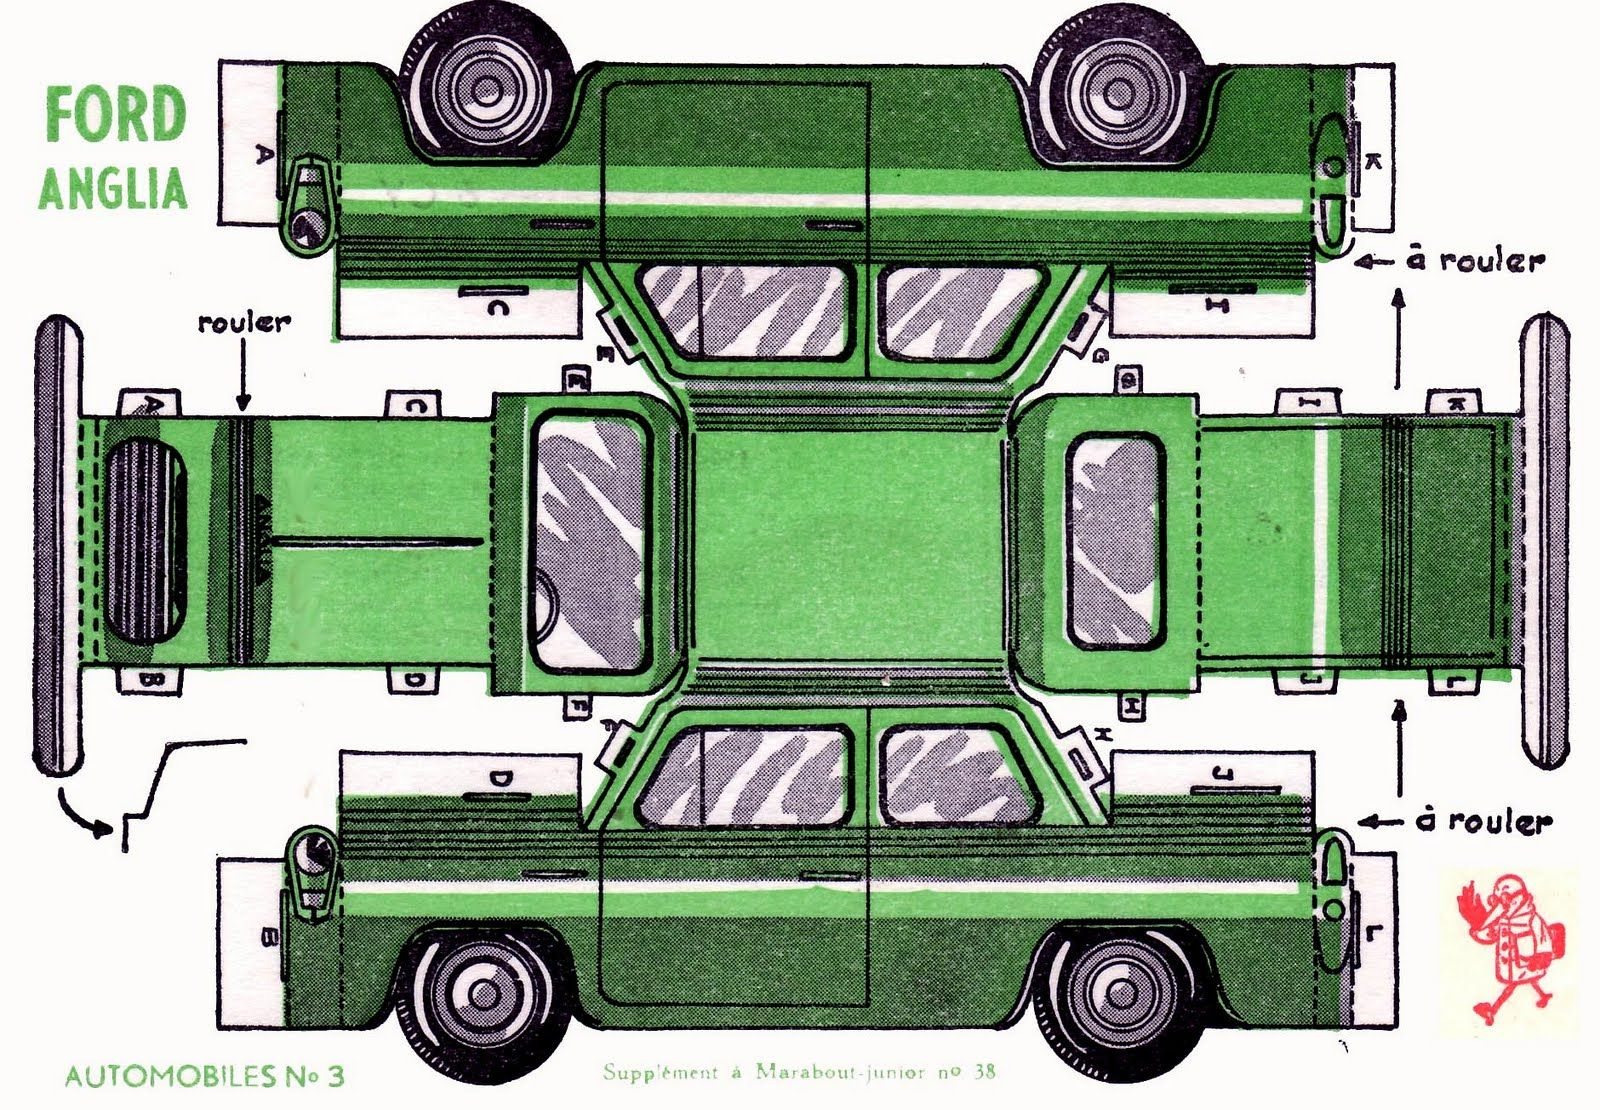 Vintage Ford Anglia Car Paper Model Cut Outs